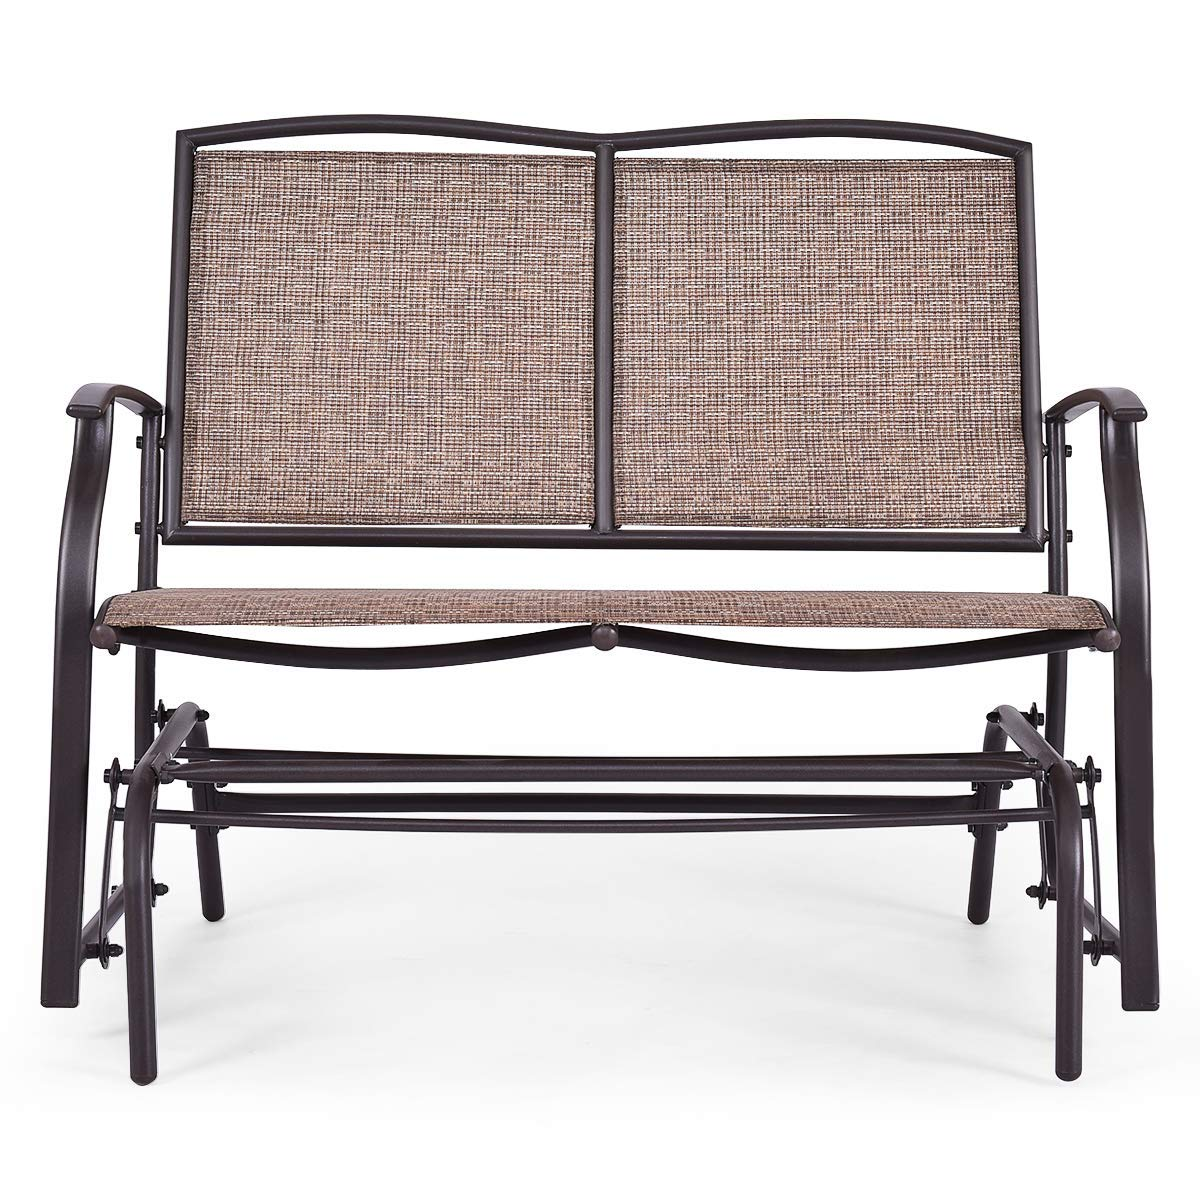 Wenst'sKufAN Patio Glider Chair, Outdoor Textilene Swing Glider Bench with Stable Steel Frame, Patio Swing Glider Bench for 2 Persons Rocking Chair, Idea for Outdoor Backyard,Beside Pool and Lawn by Wenst'sKufAN